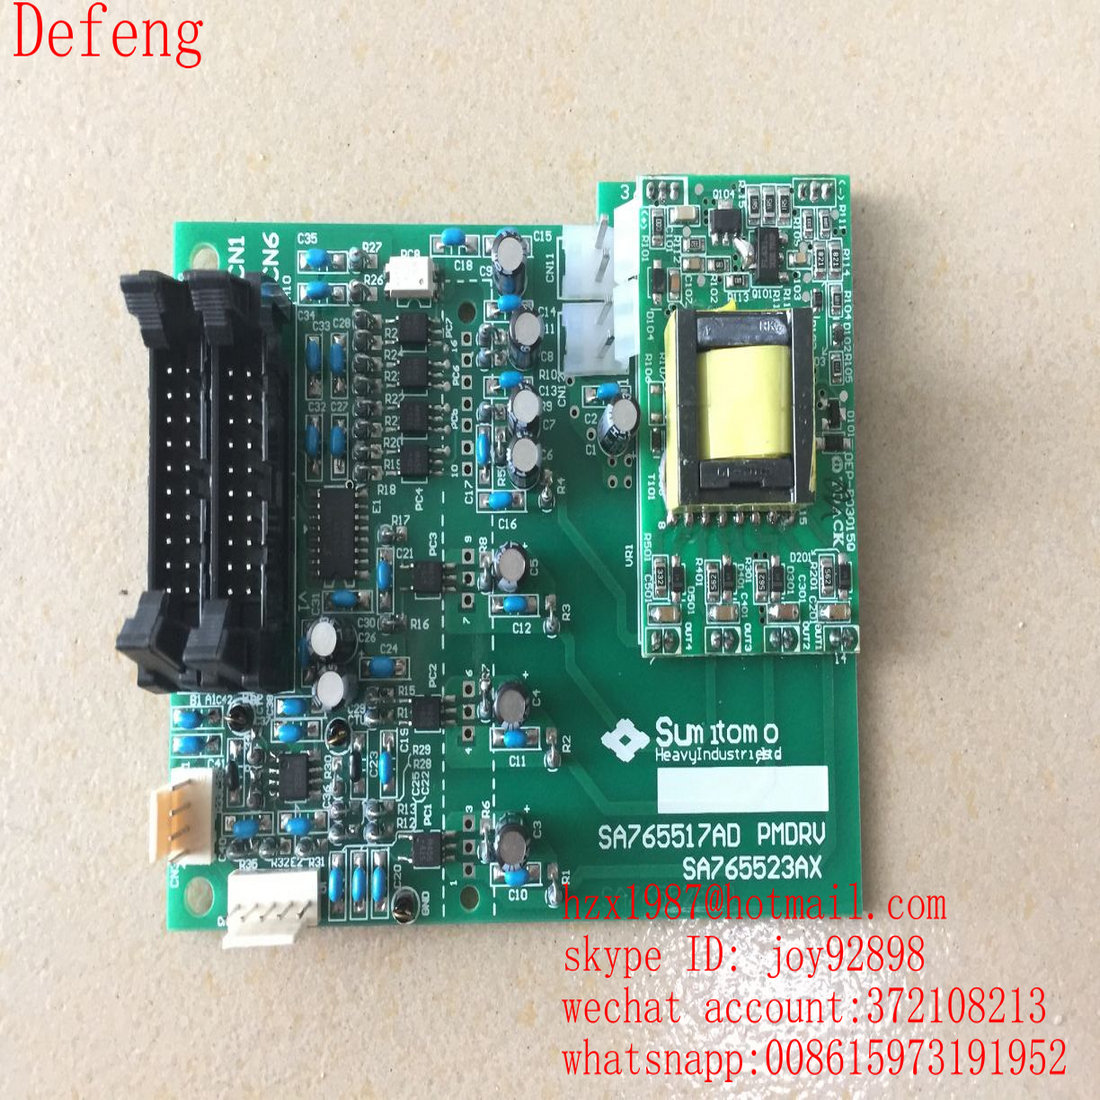 SA765519AD servo driver bpard for sumitomo SE280HD machine